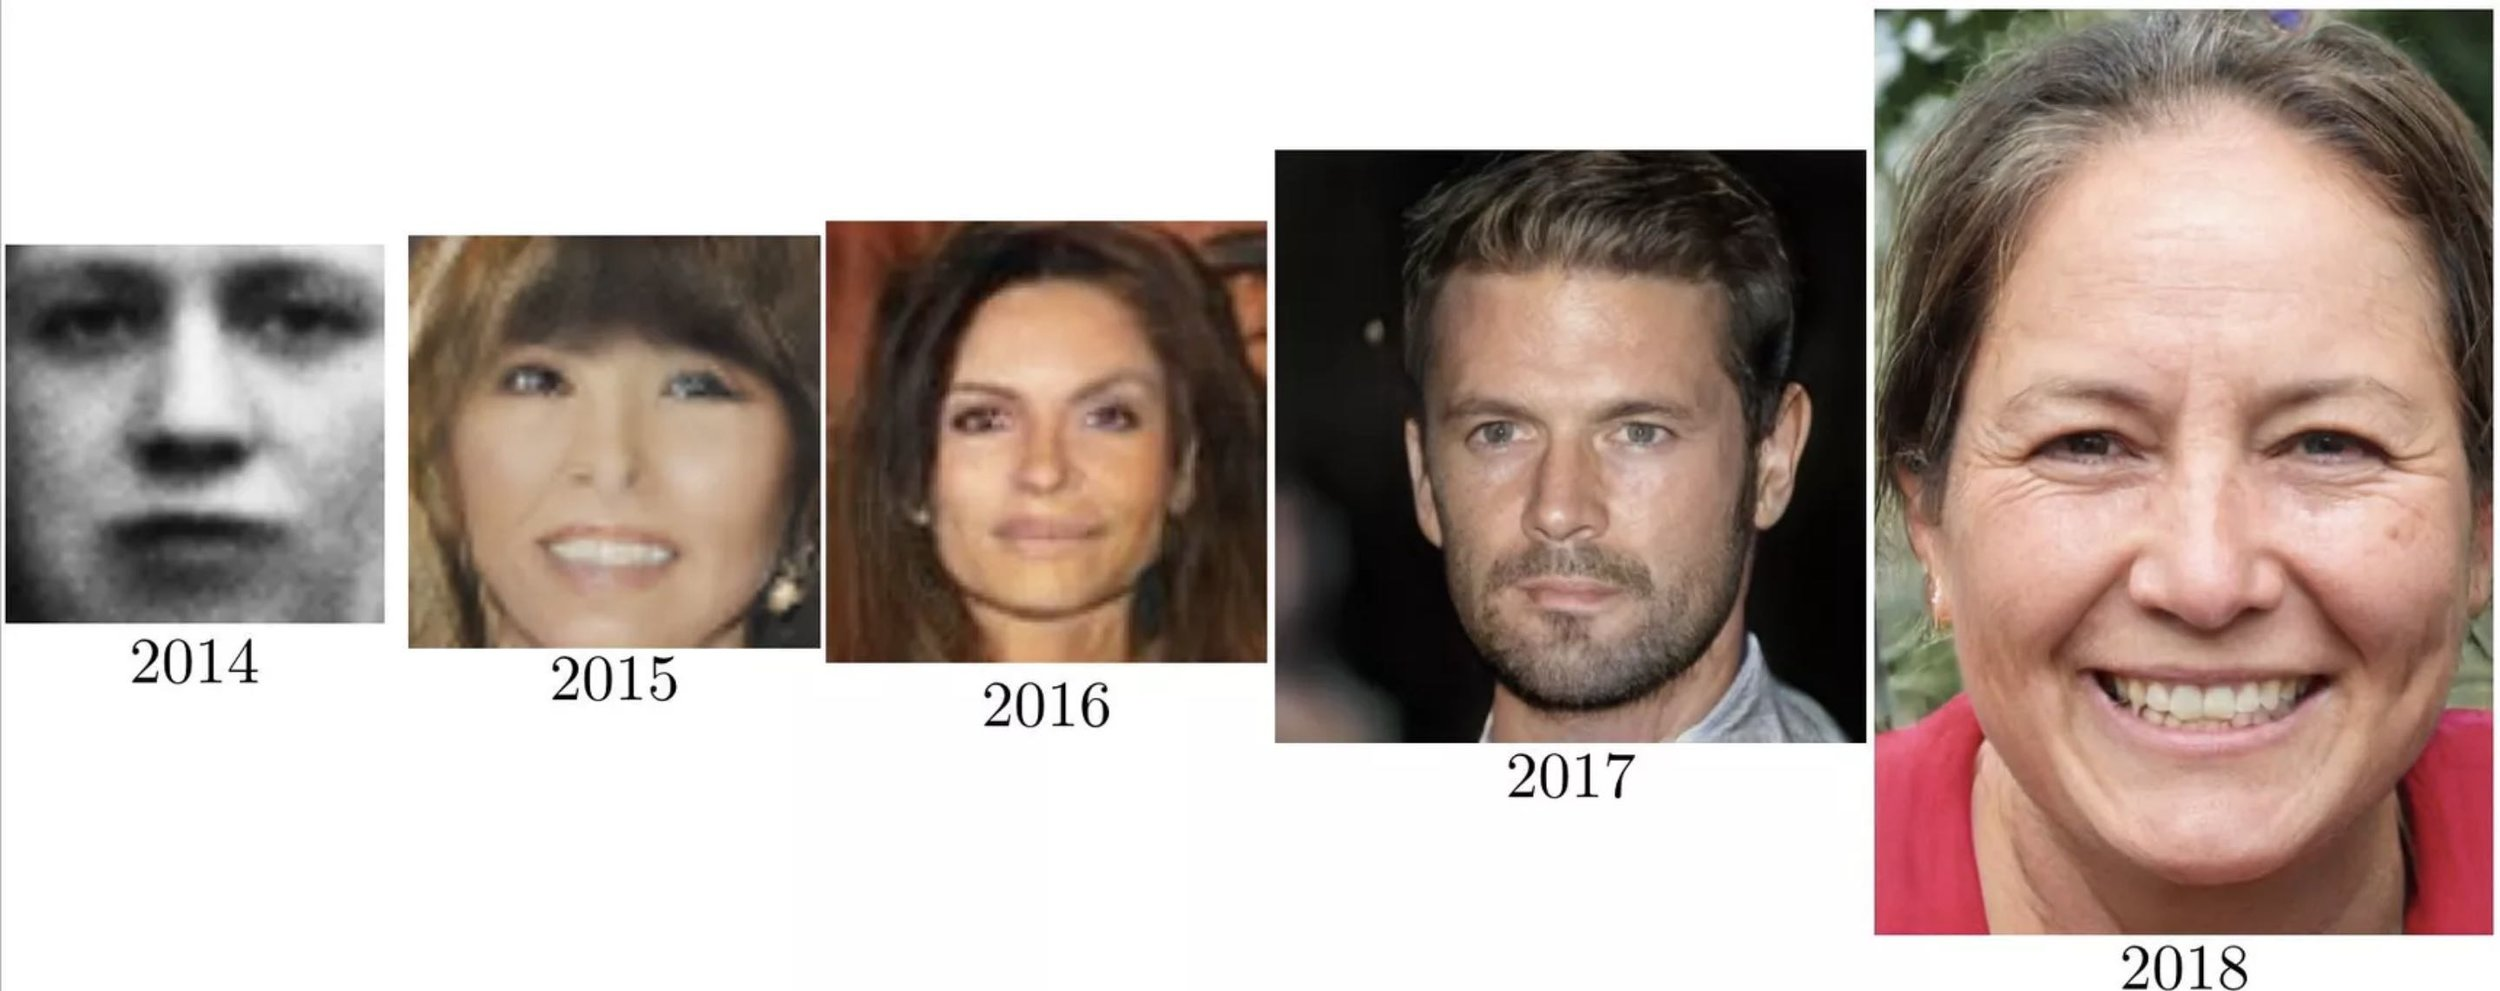 Images showing the advancement in AI generated faces over the course of 4 years